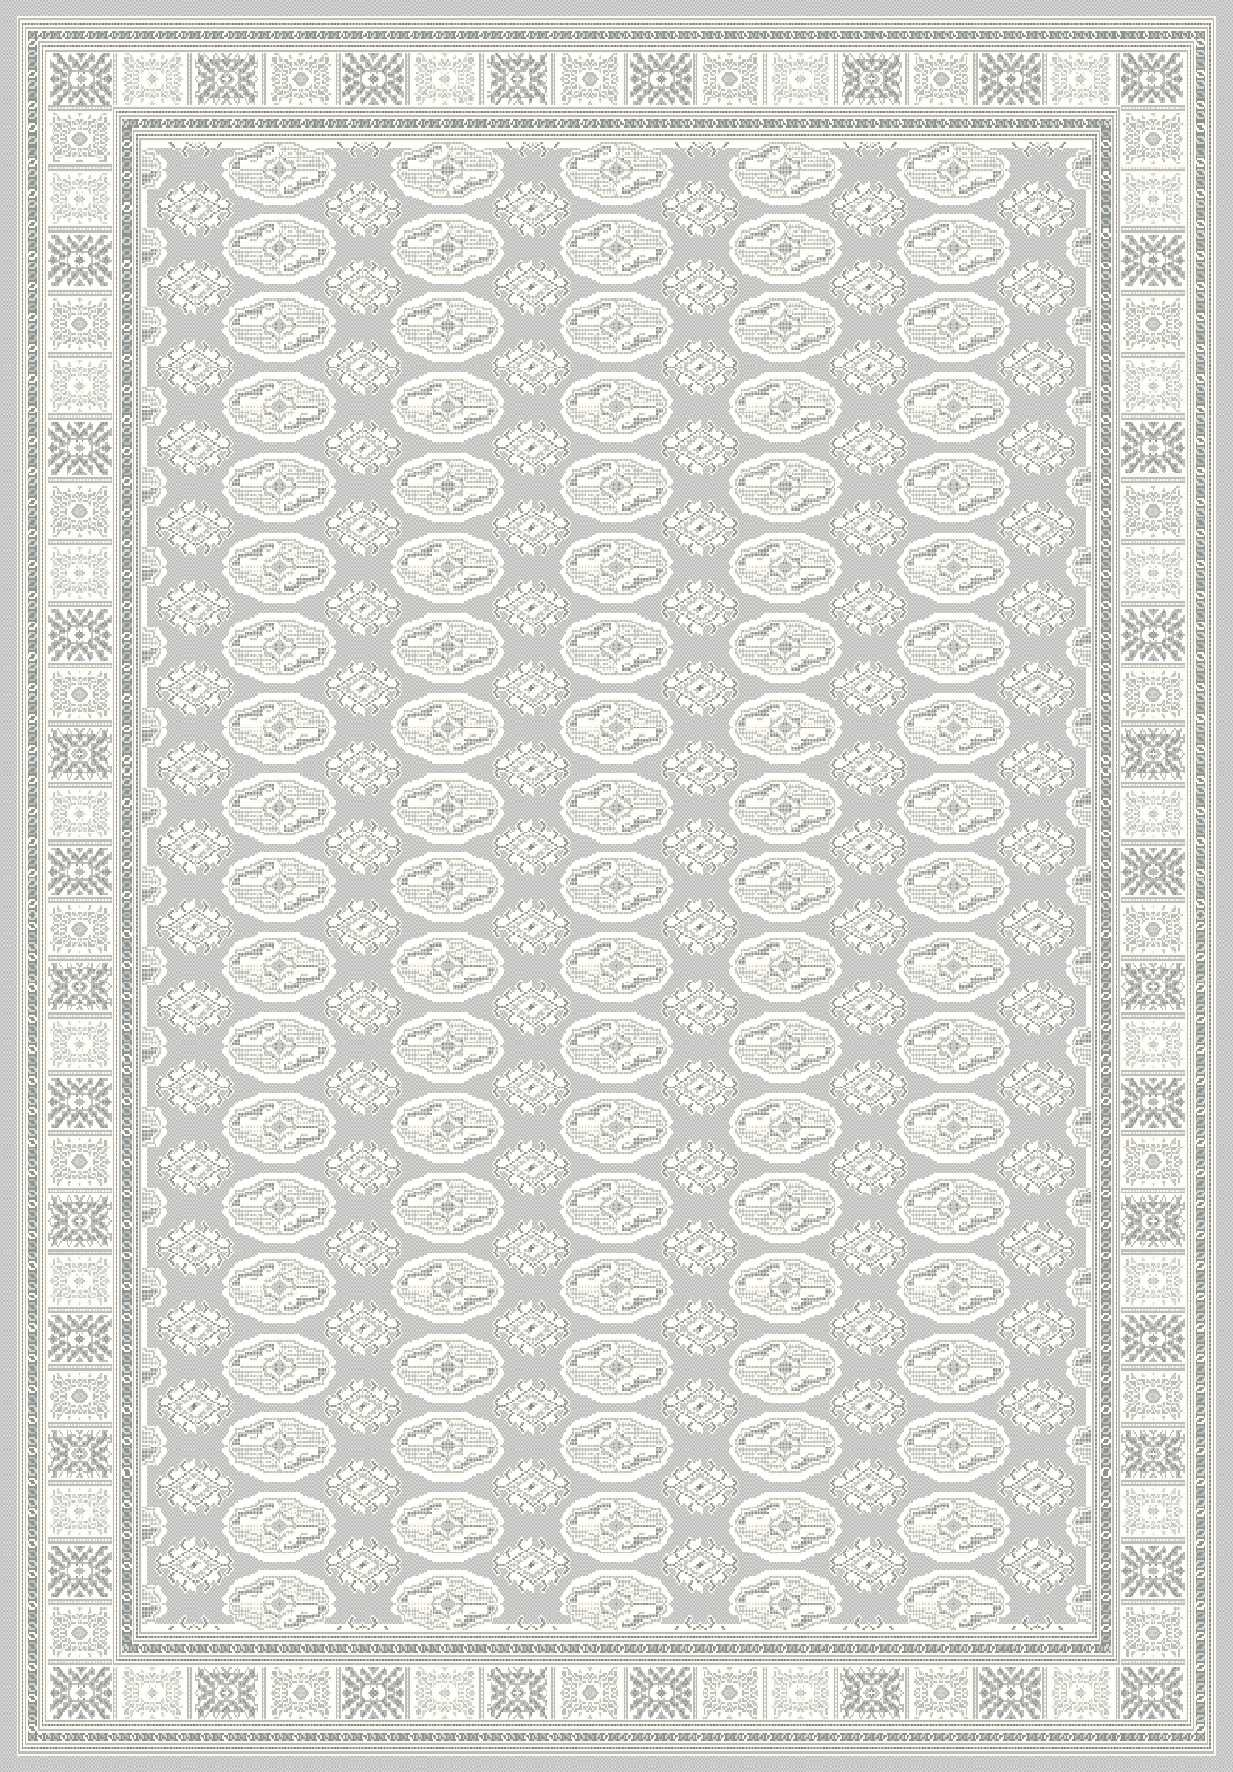 Dynamic Rugs Imperial Classic Grey 12146 Area Rug